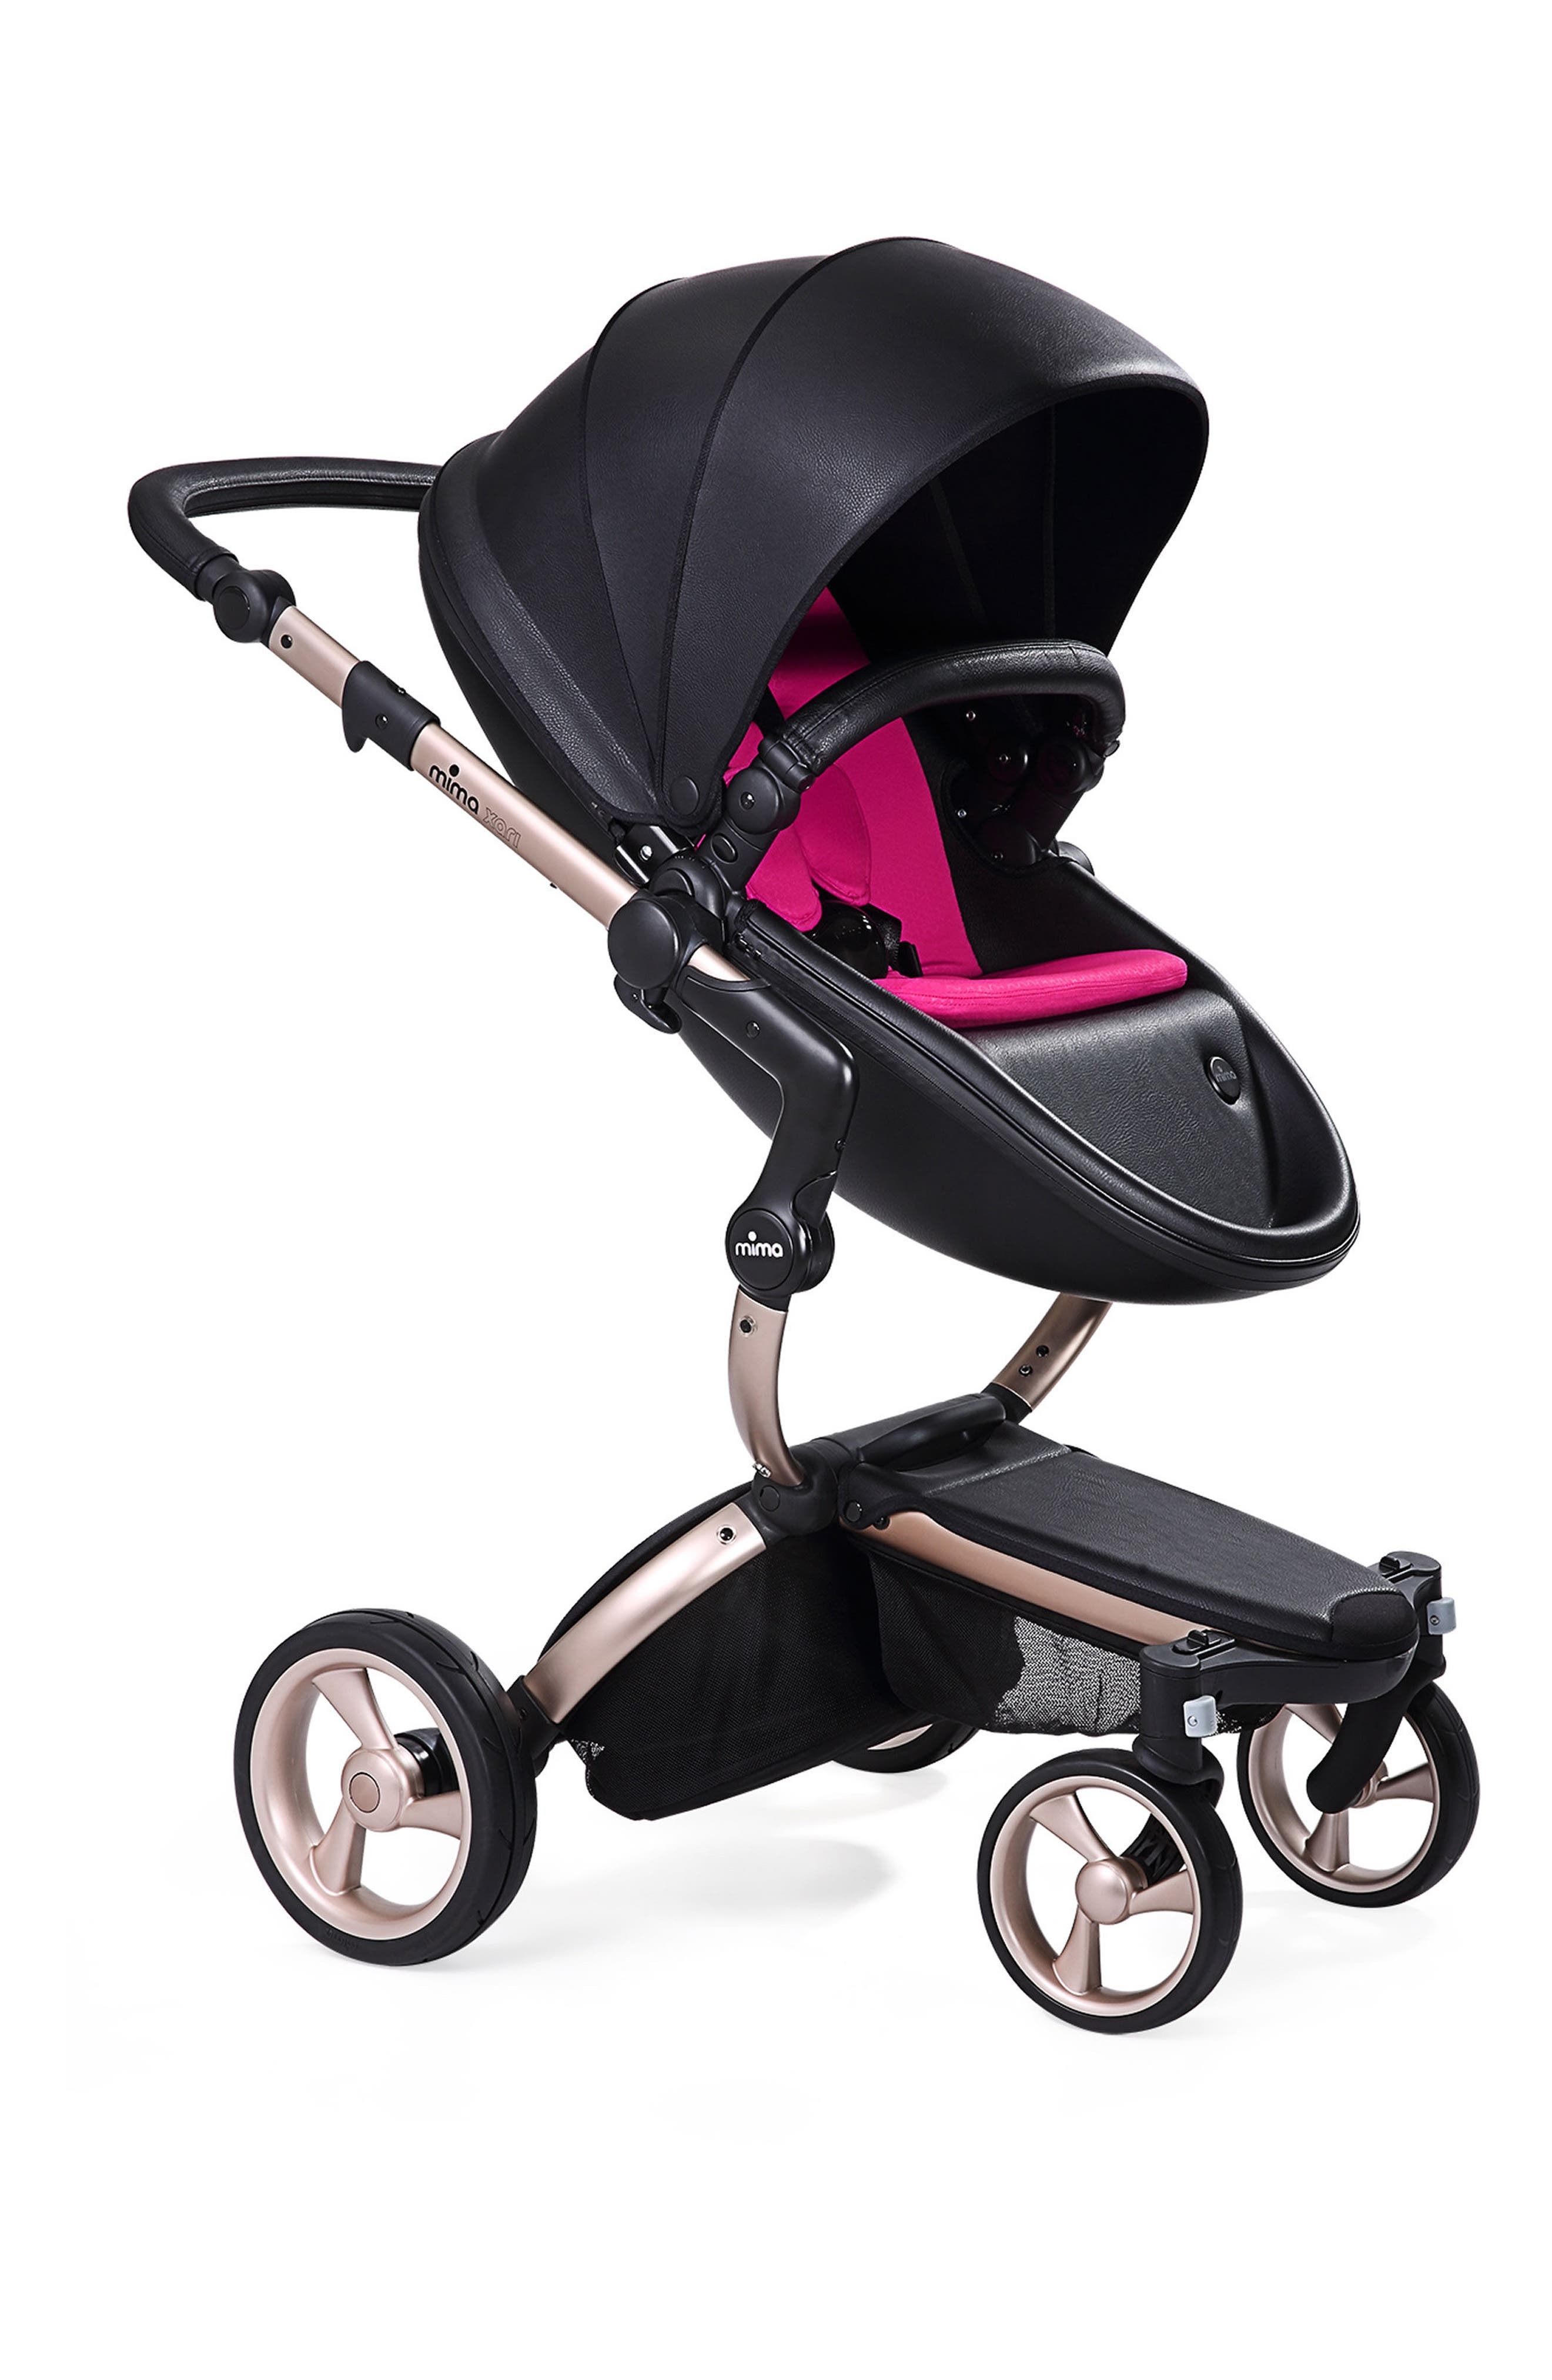 Xari Rose Gold Chassis Stroller with Reversible Reclining Seat & Carrycot,                         Main,                         color, BLACK/ HOT MAGENTA